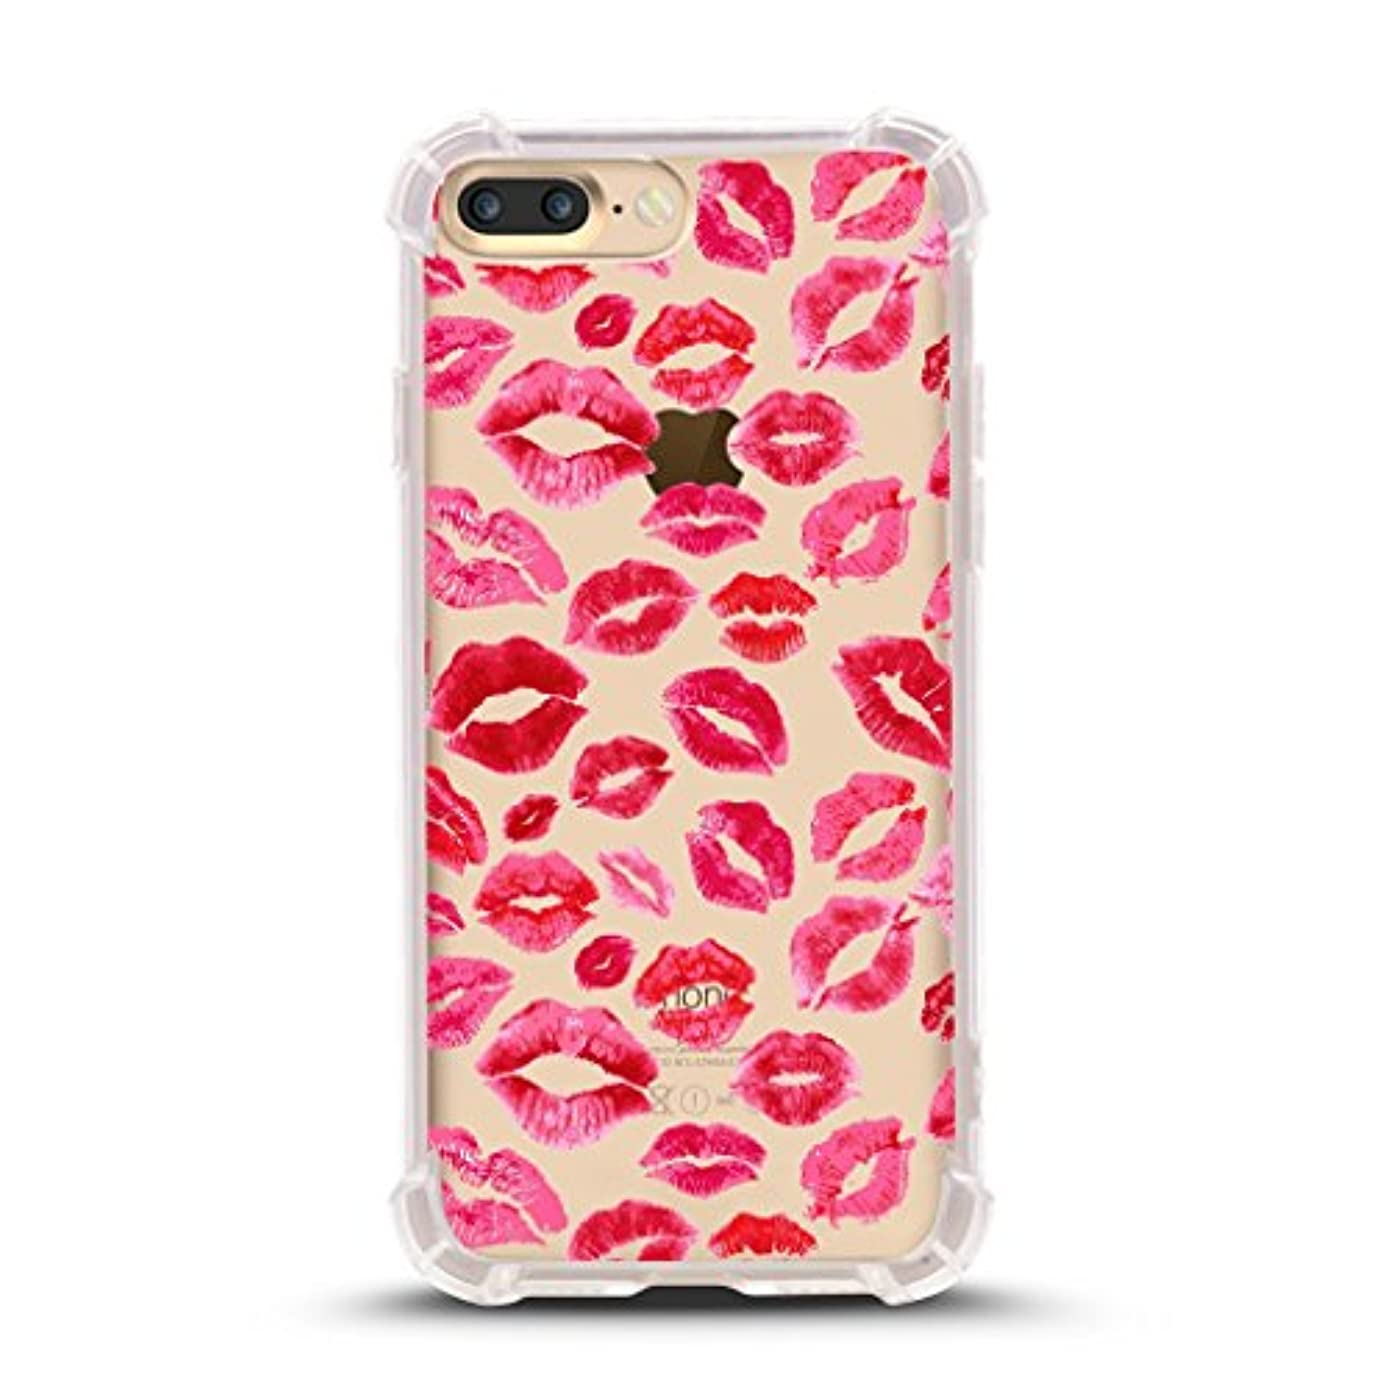 iPhone 7 Plus Shock Absorbent Case (5.5 inch screen), lips prints pattern Design